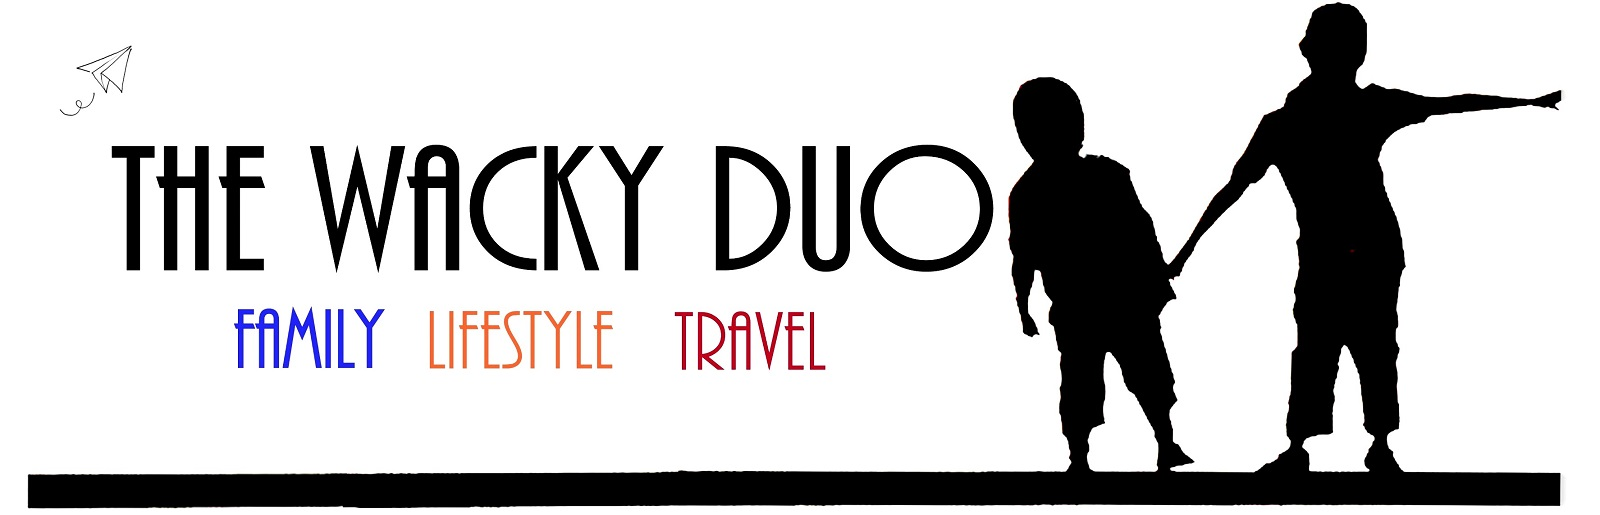 The Wacky Duo | Singapore Family Lifestyle and Travel Portal